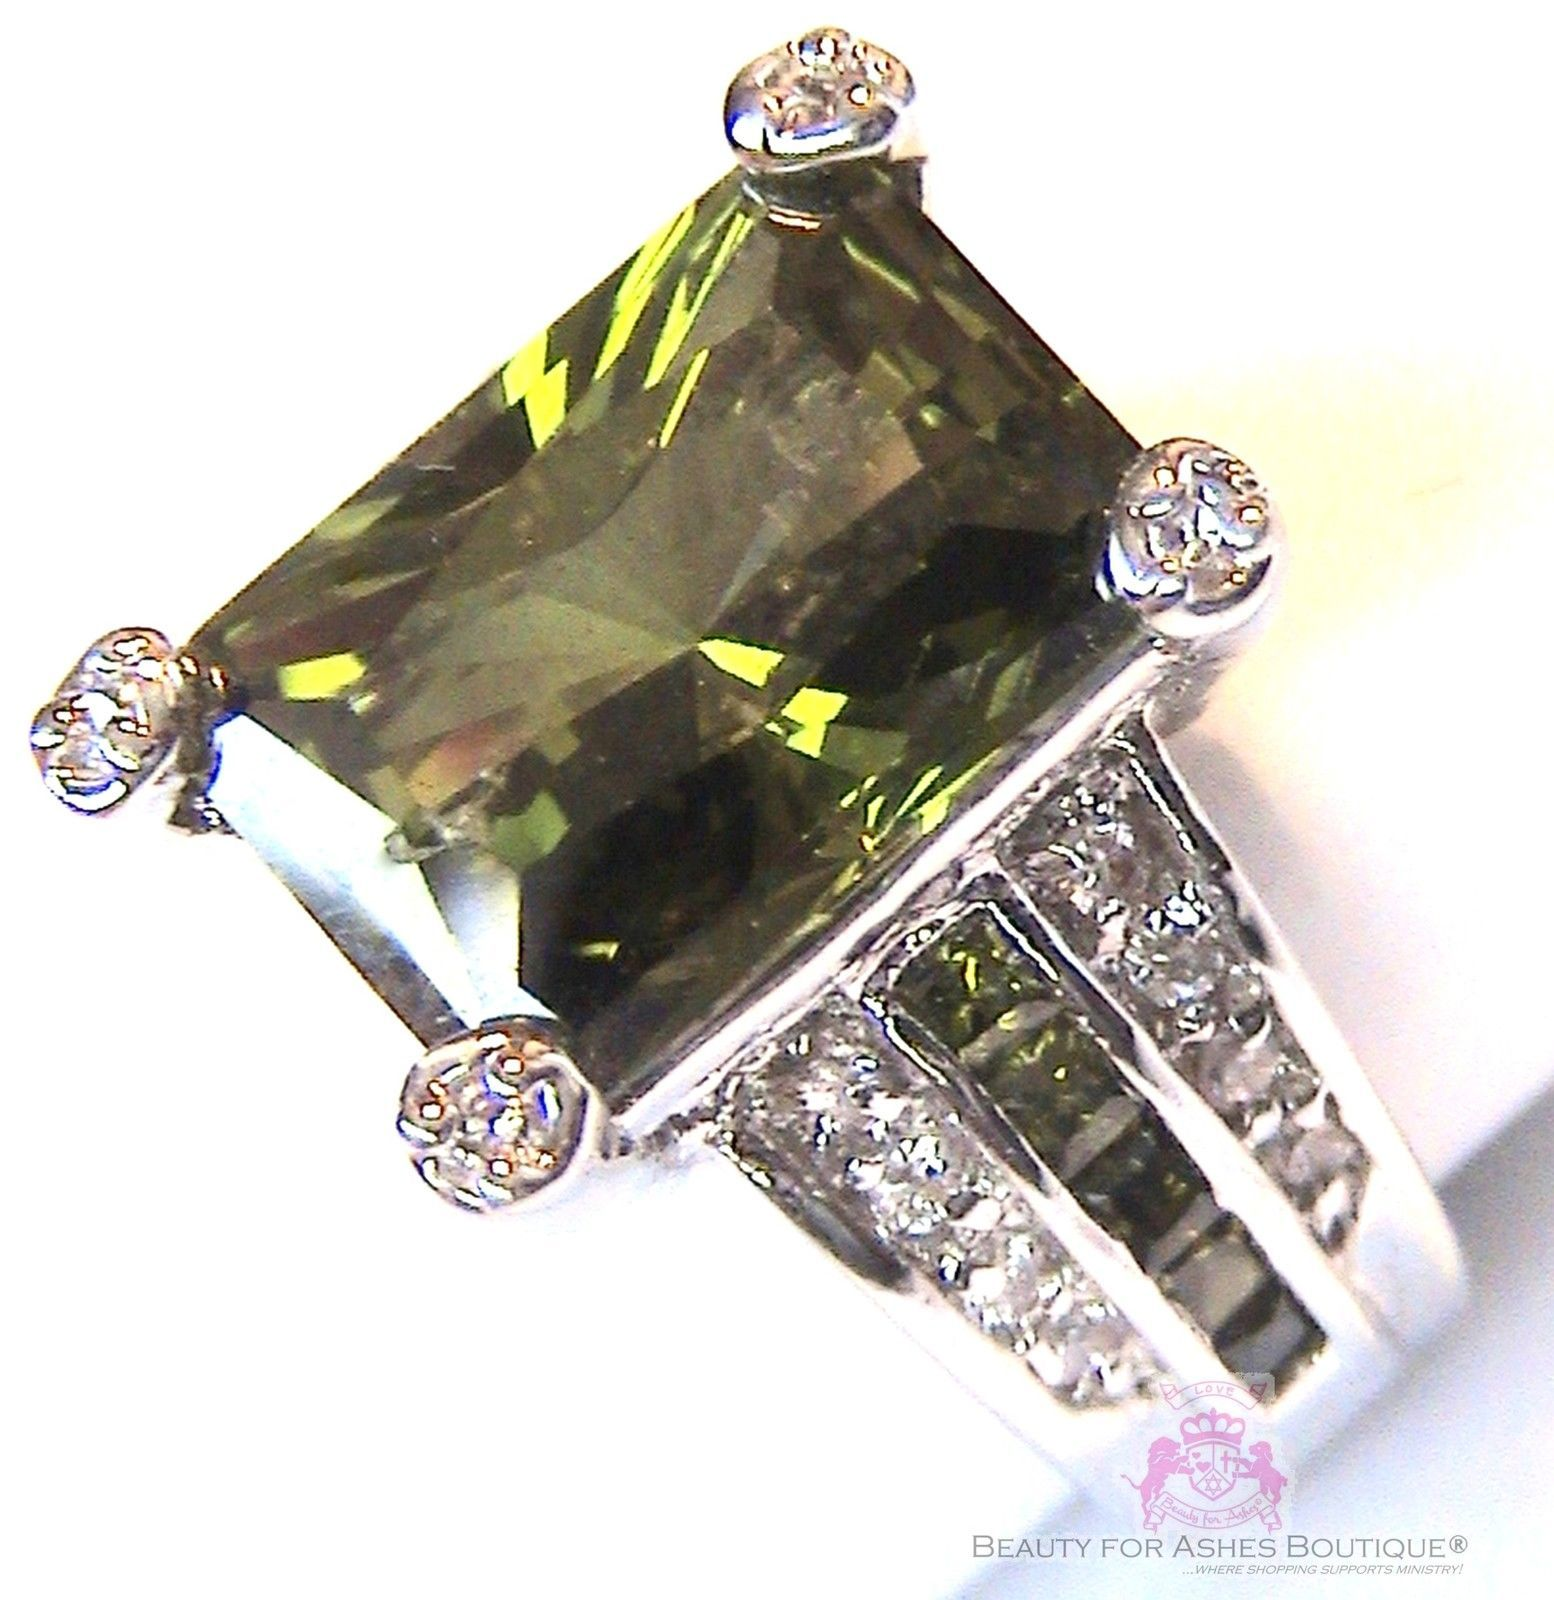 Beauty for Ashes Evergreen Olivine Olive Green CZ Prom Celebrity Cocktail Ring - $24.50 - $49.00